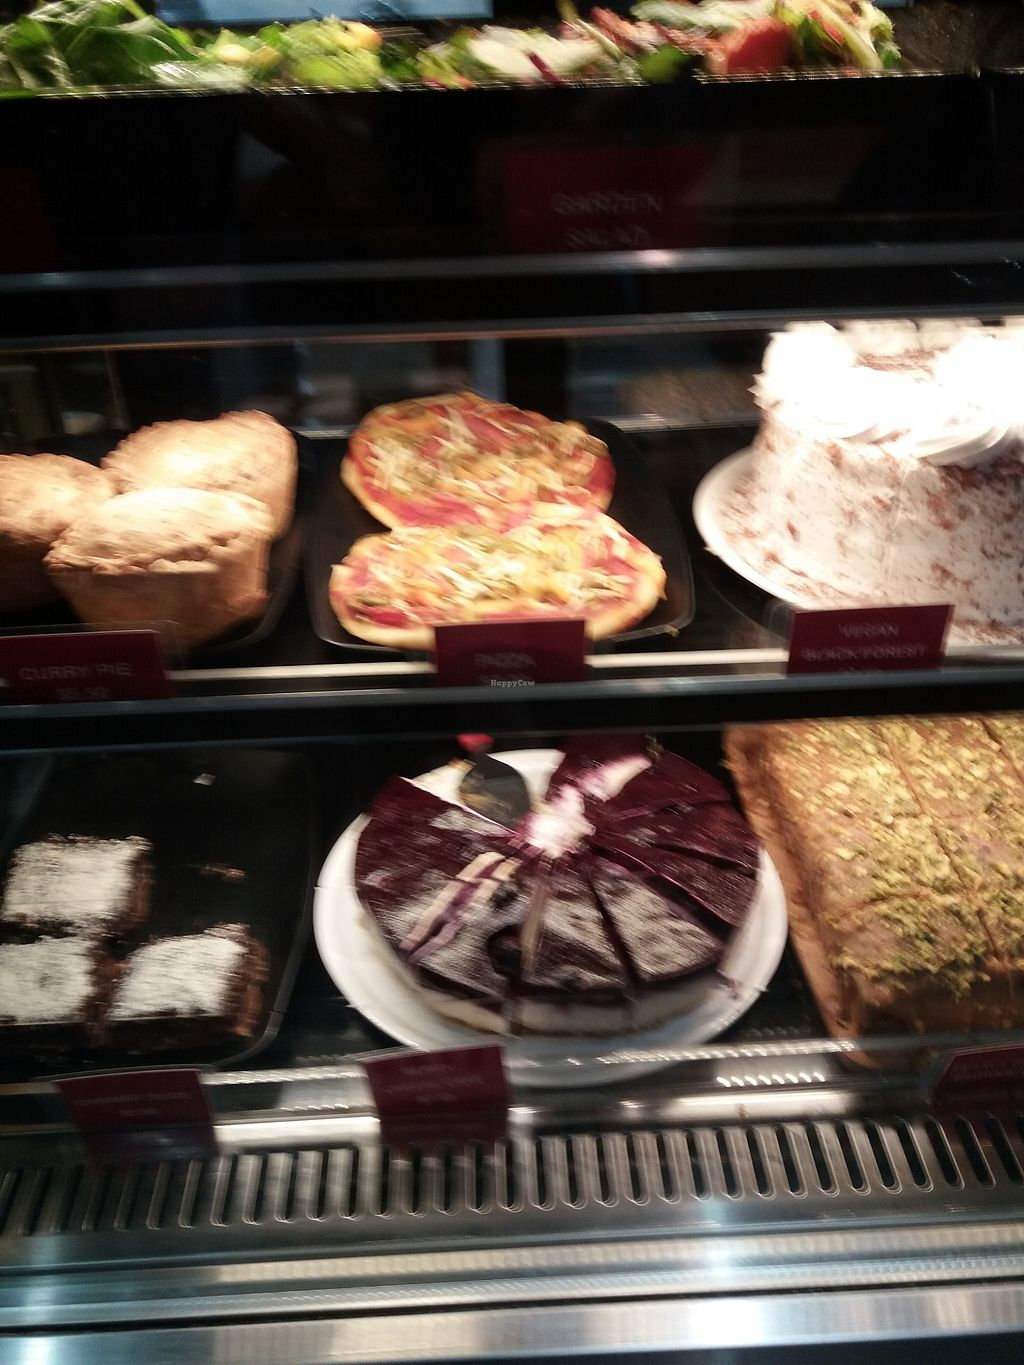 """Photo of Hari's Vegetarian  by <a href=""""/members/profile/veganvirtues"""">veganvirtues</a> <br/>Selection of vegan cakes <br/> July 11, 2017  - <a href='/contact/abuse/image/32555/279001'>Report</a>"""